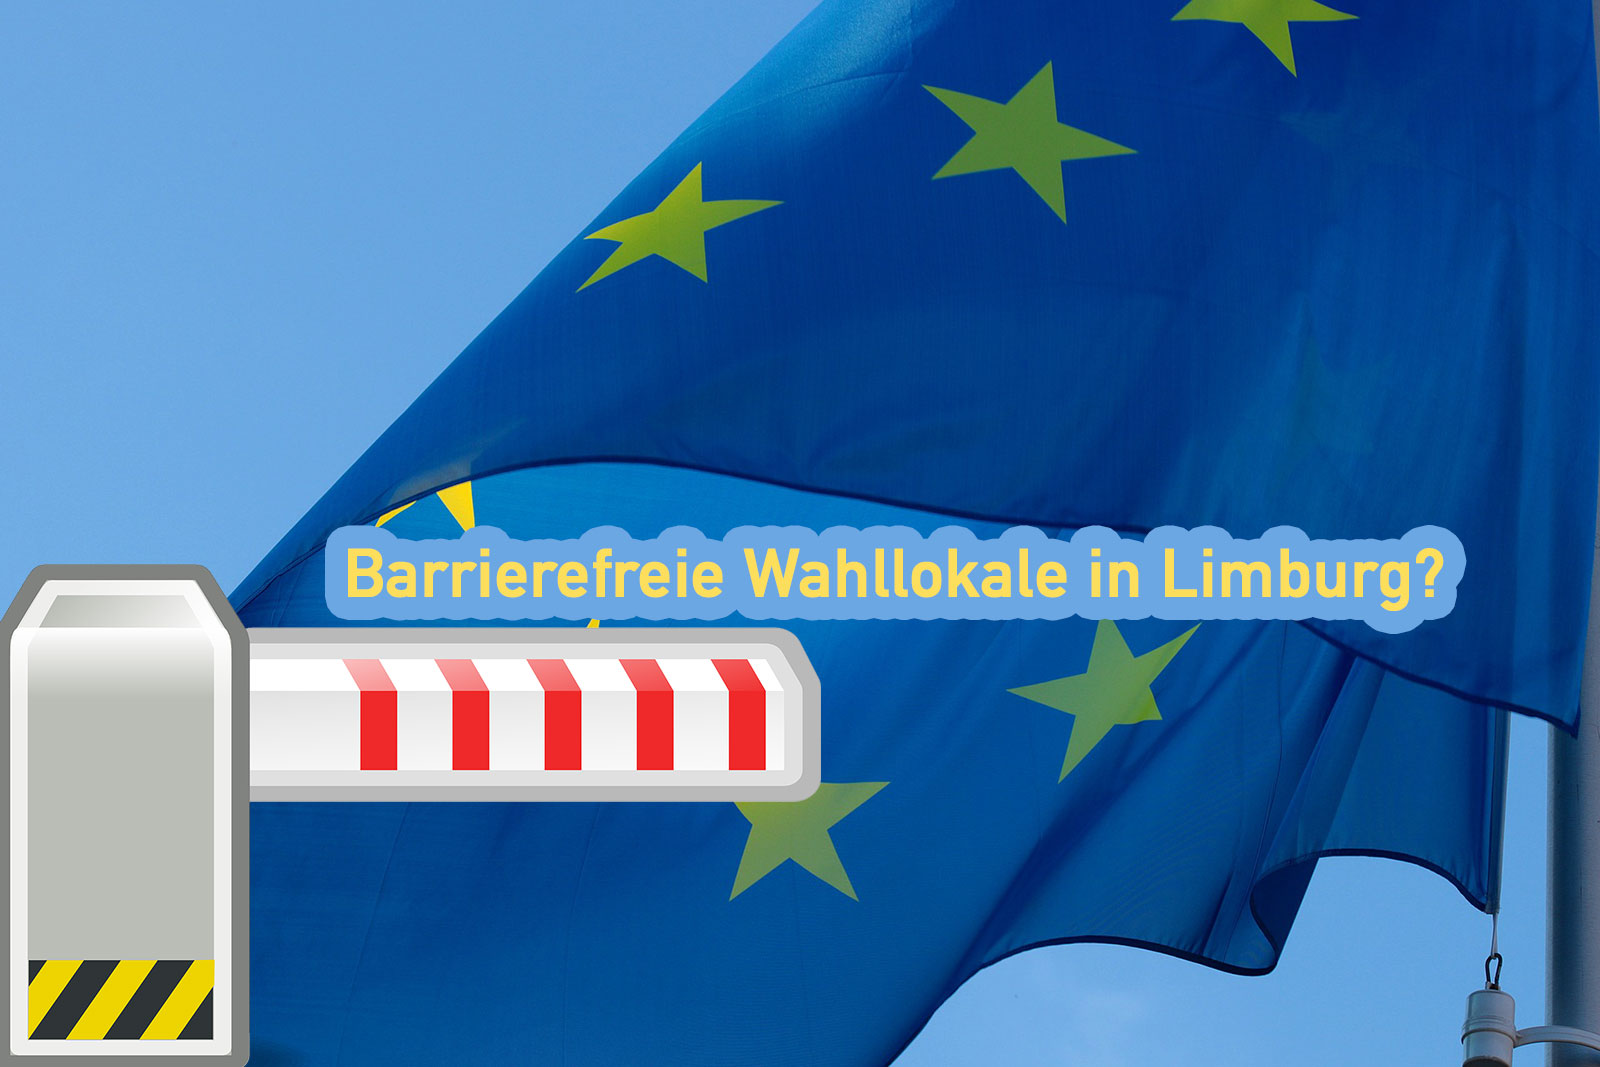 Barrierefreie Wahllokale in Limburg?